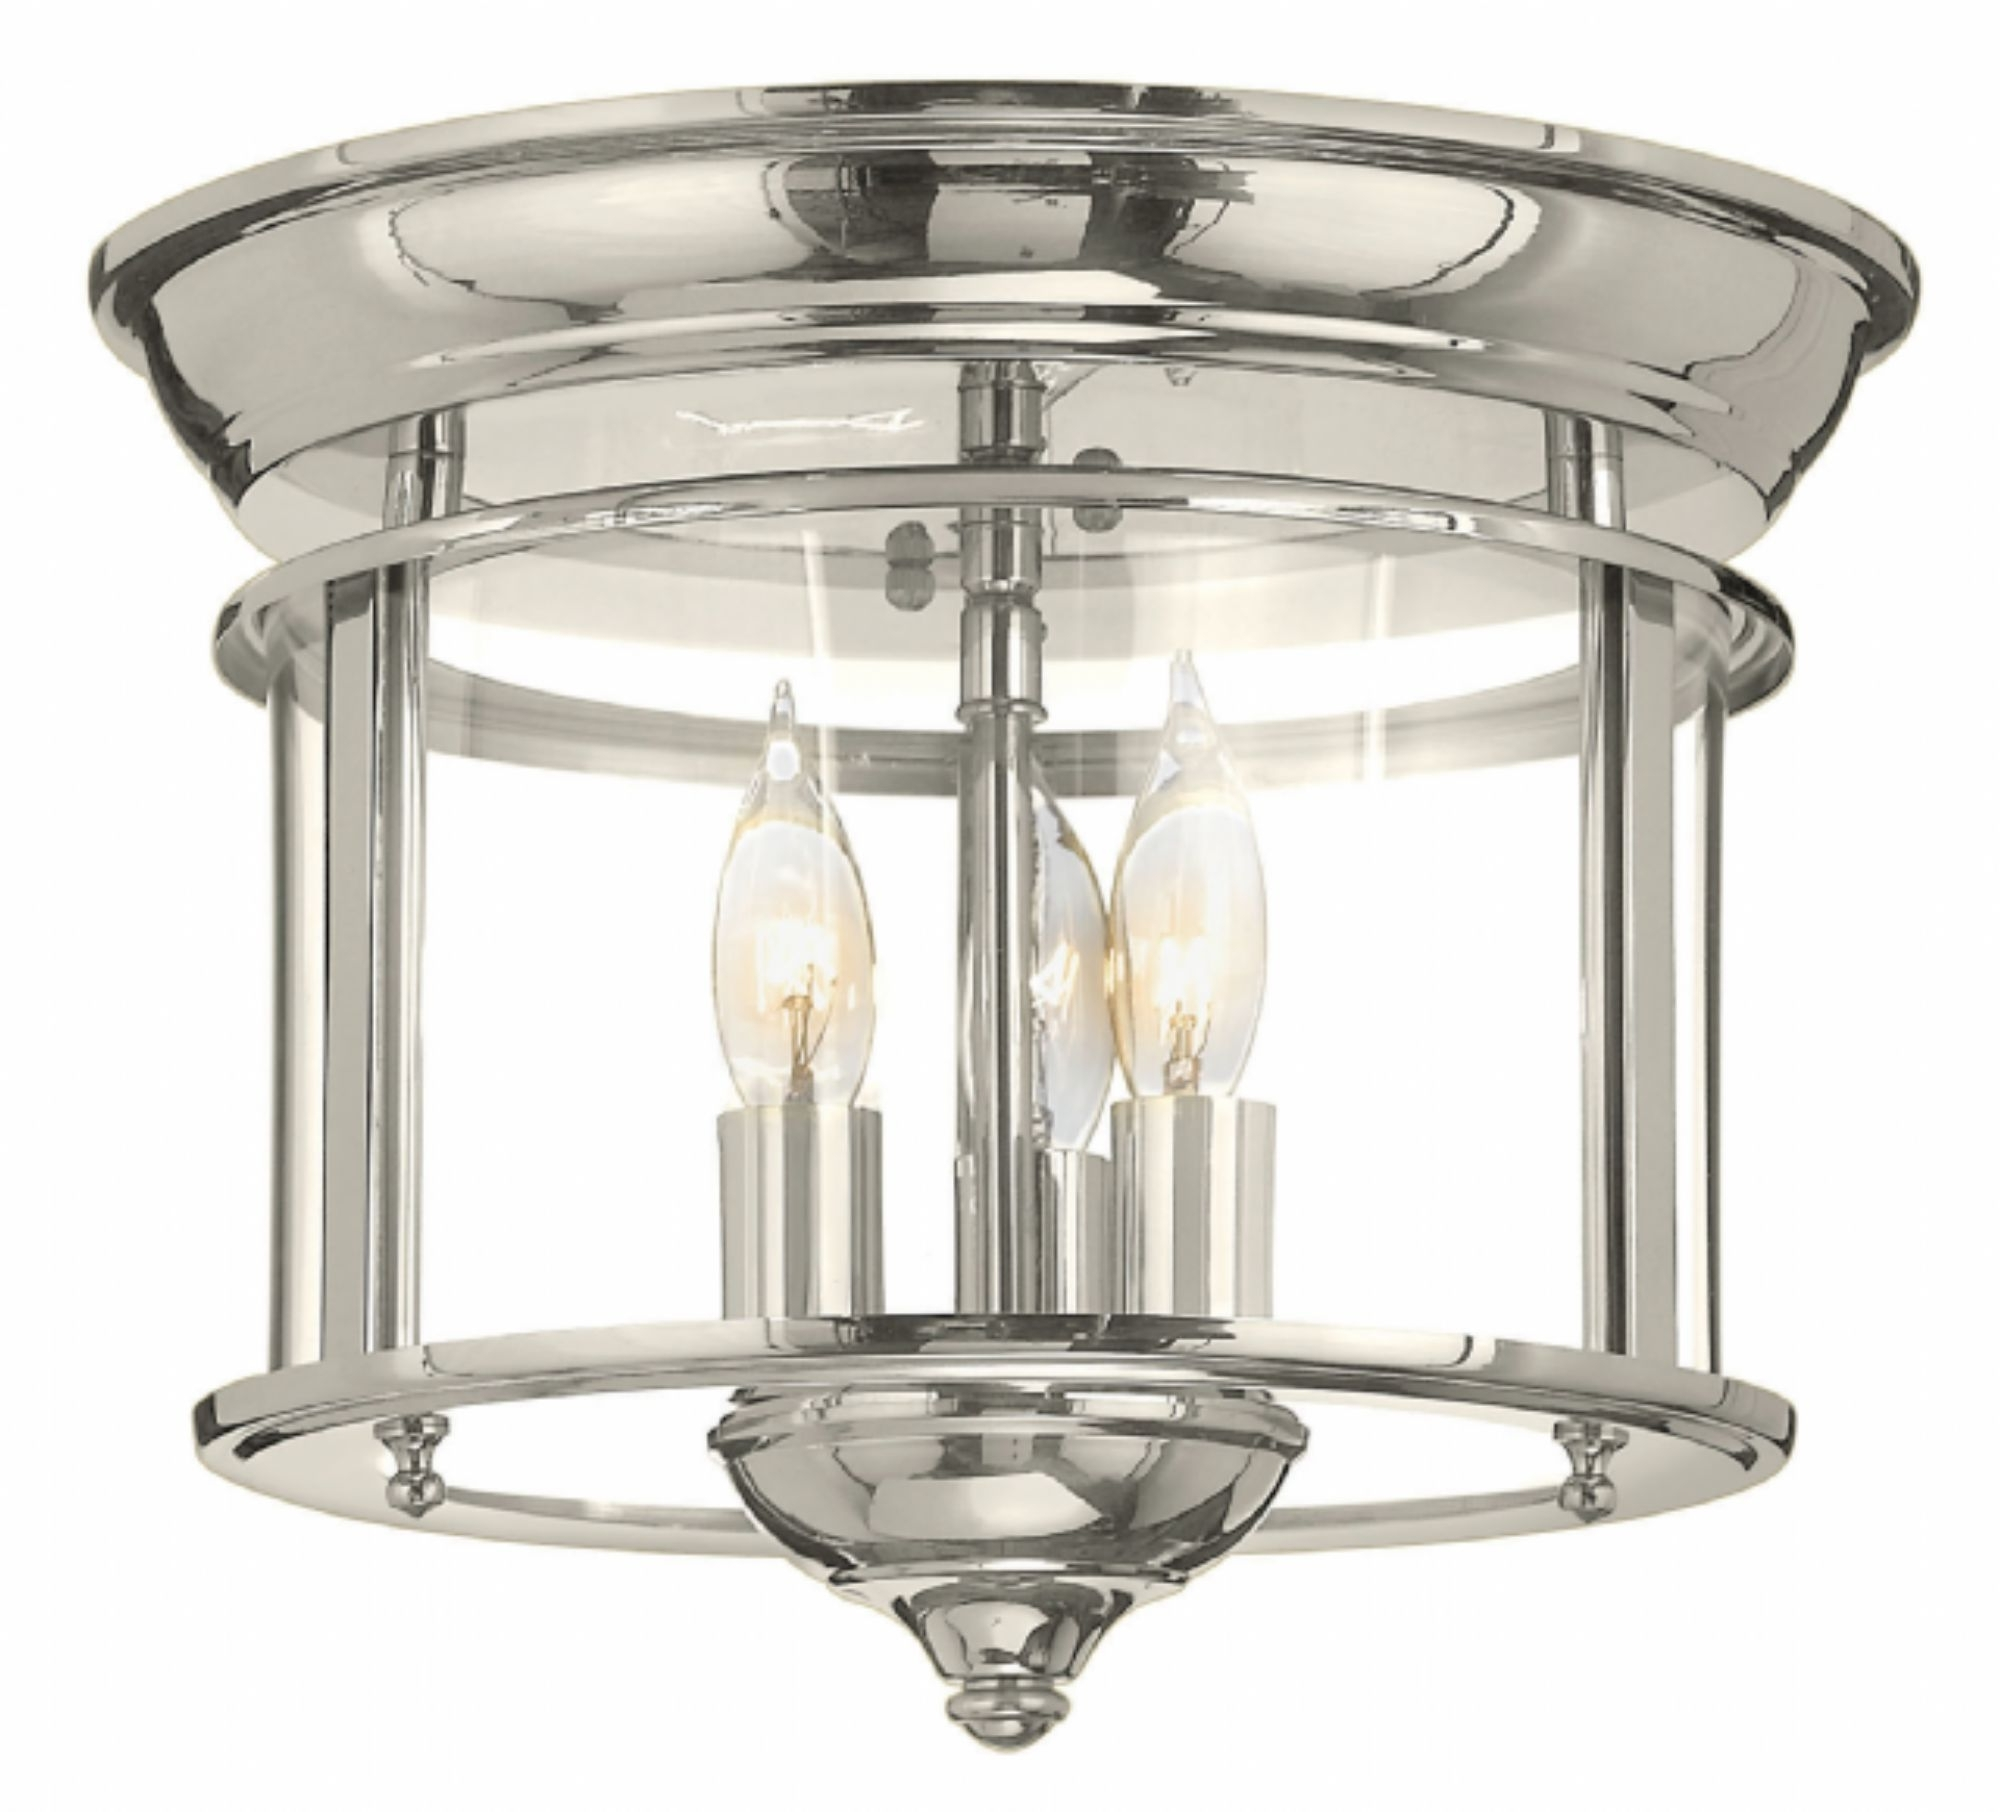 Flush Mount Hinkley Lighting With Best And Newest Polished Nickel Gentry > Interior Ceiling Mount (View 10 of 20)